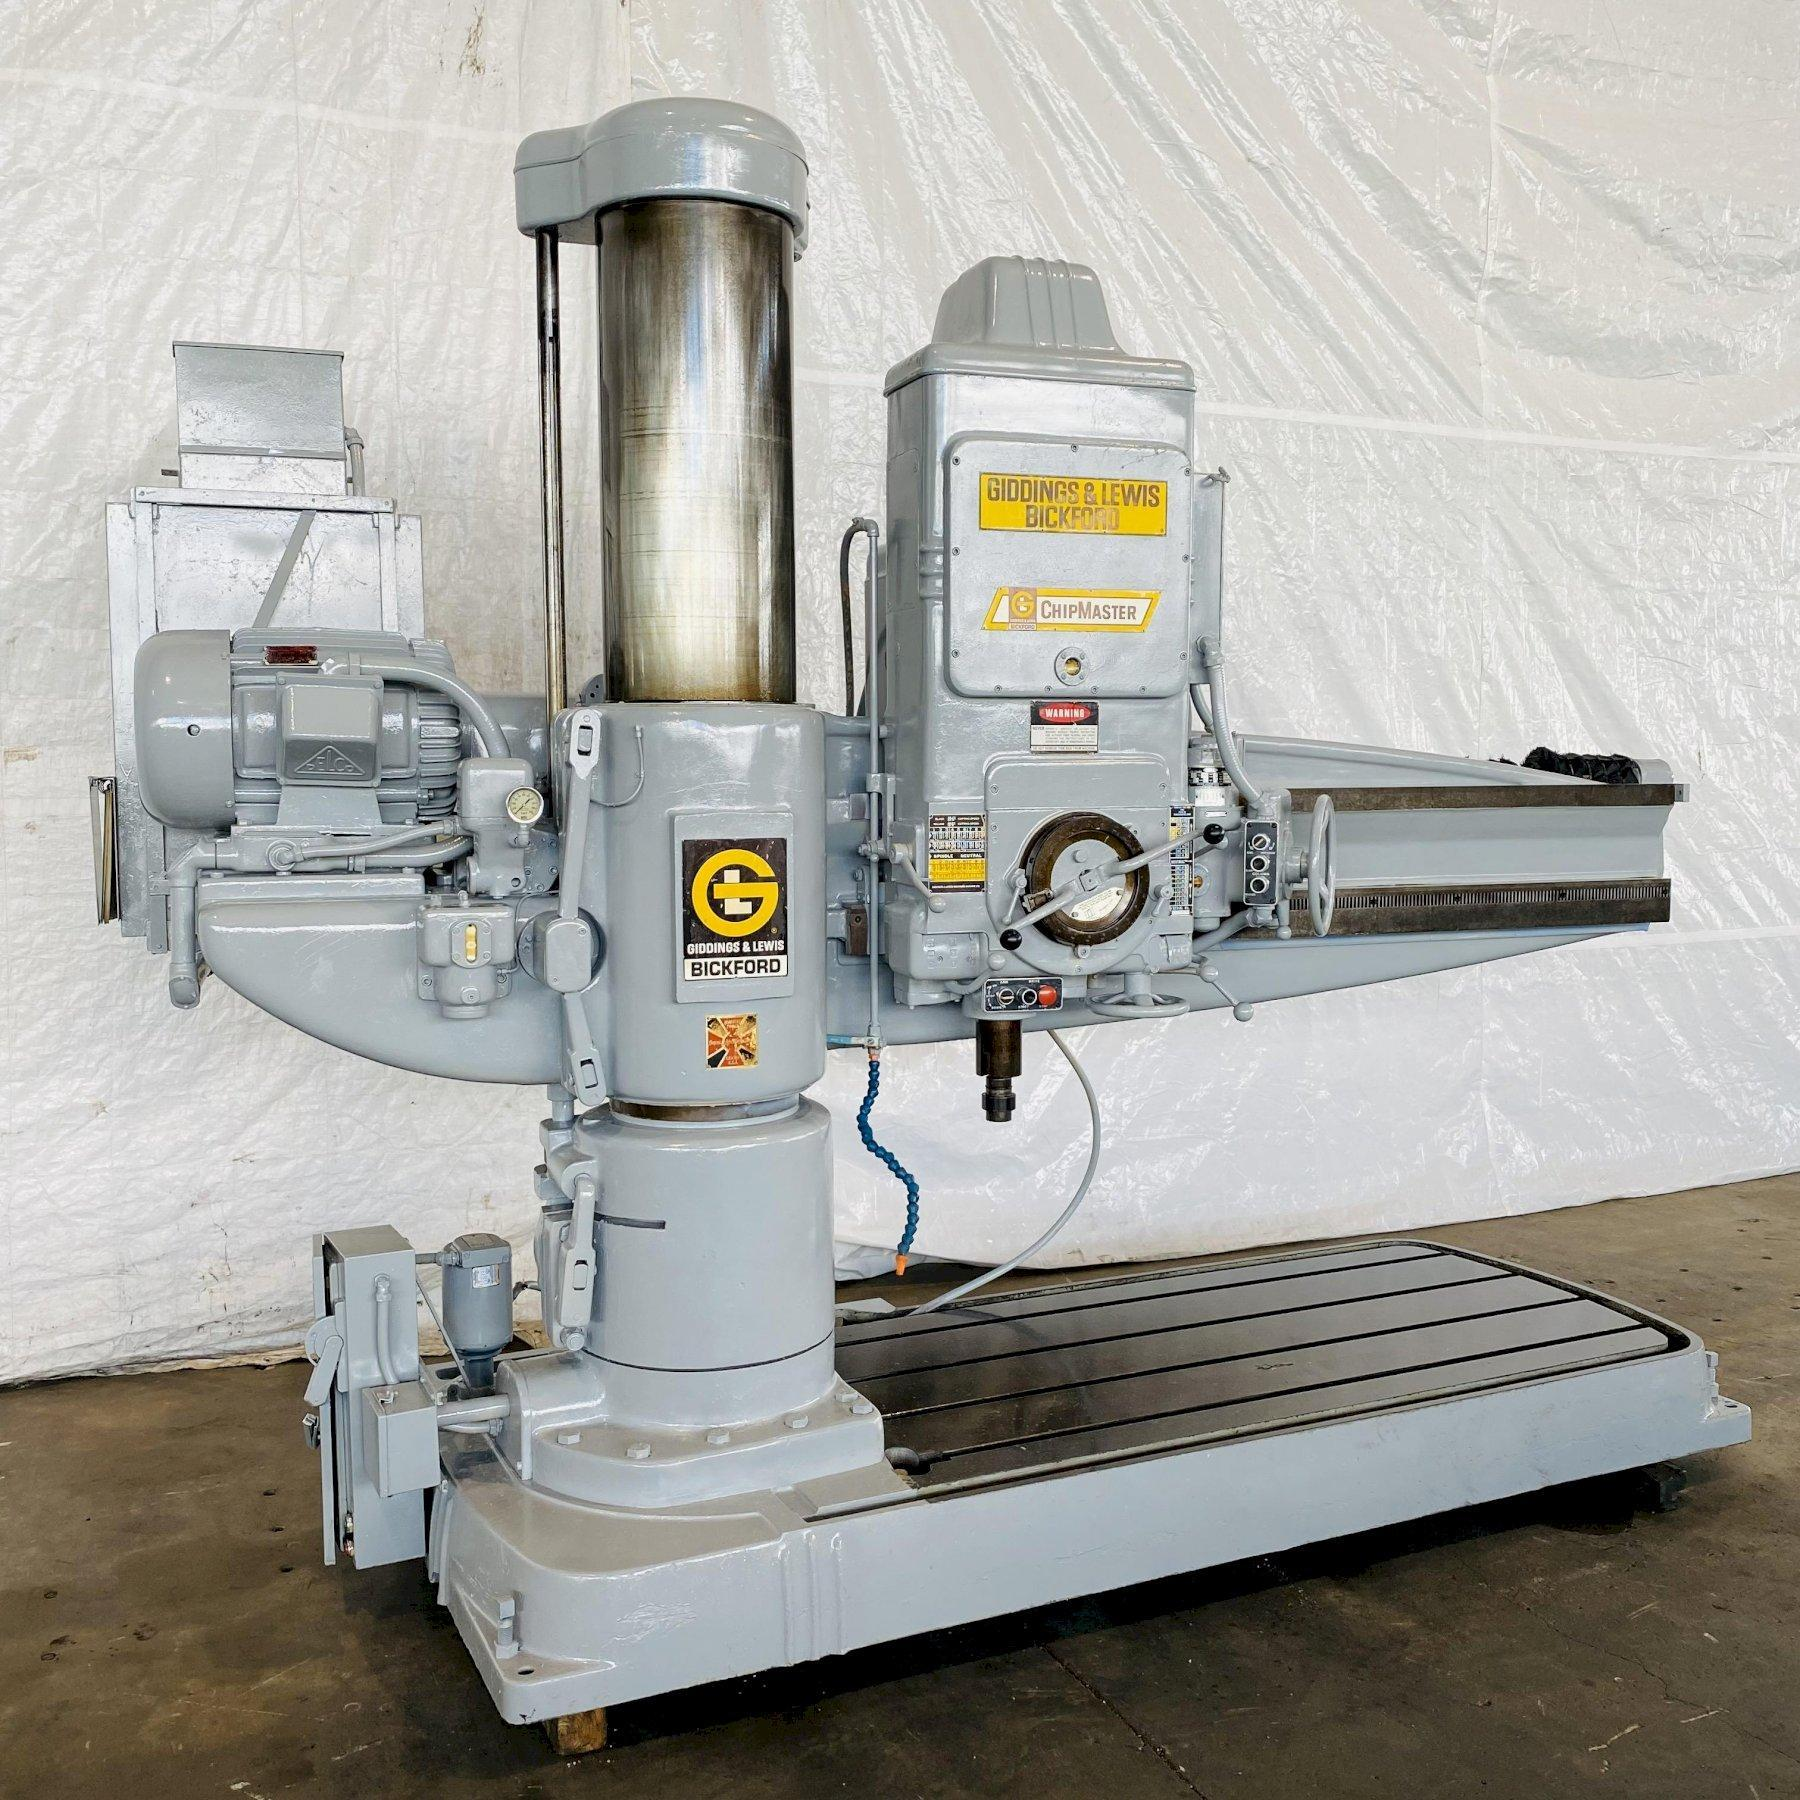 """7' X 15"""" GIDDINGS & LEWIS BICKFORD CHIPMASTER RADIAL ARM DRILL. STOCK # 0521021"""